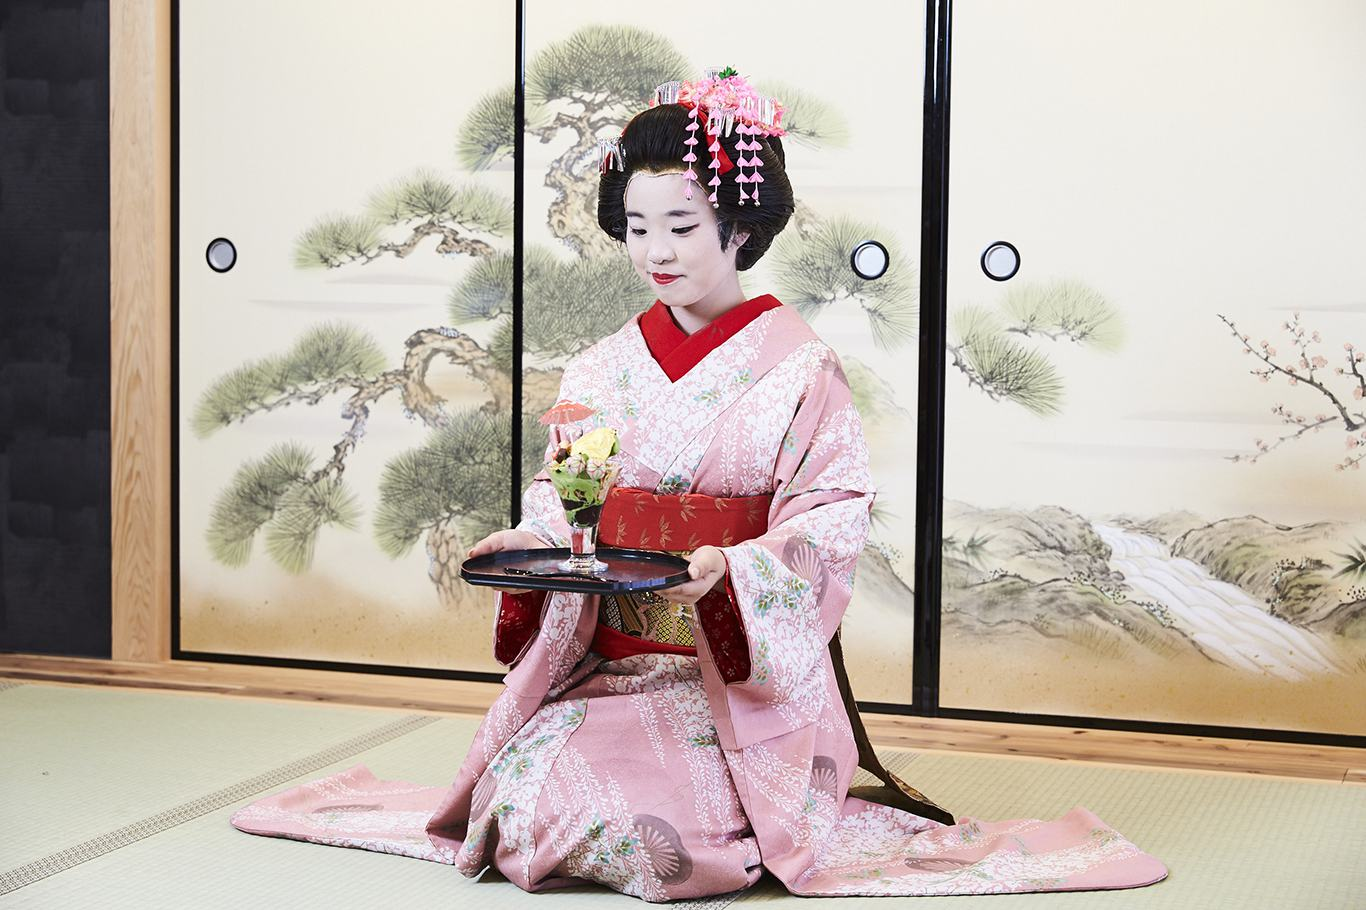 Eat Golden Ice Cream Served by a Maiko in Kyoto